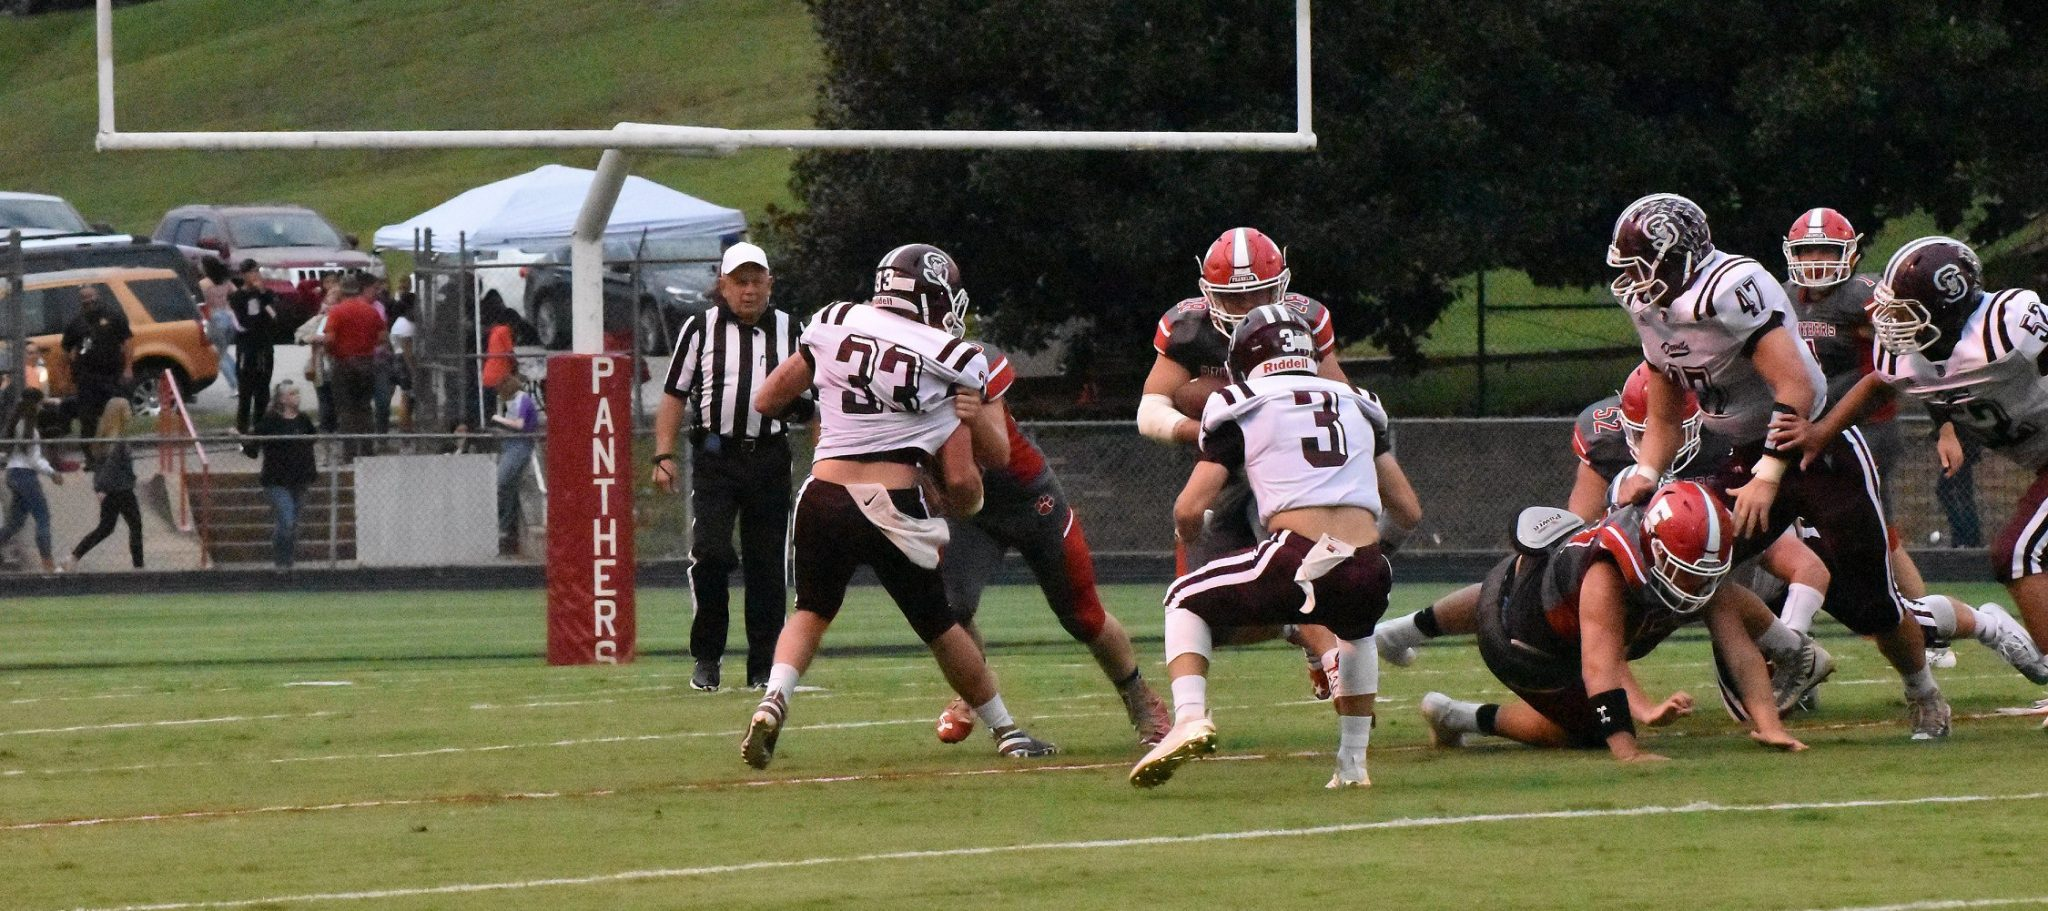 Maroon Devils Win 4th Straight, Shutout Panthers 27-0